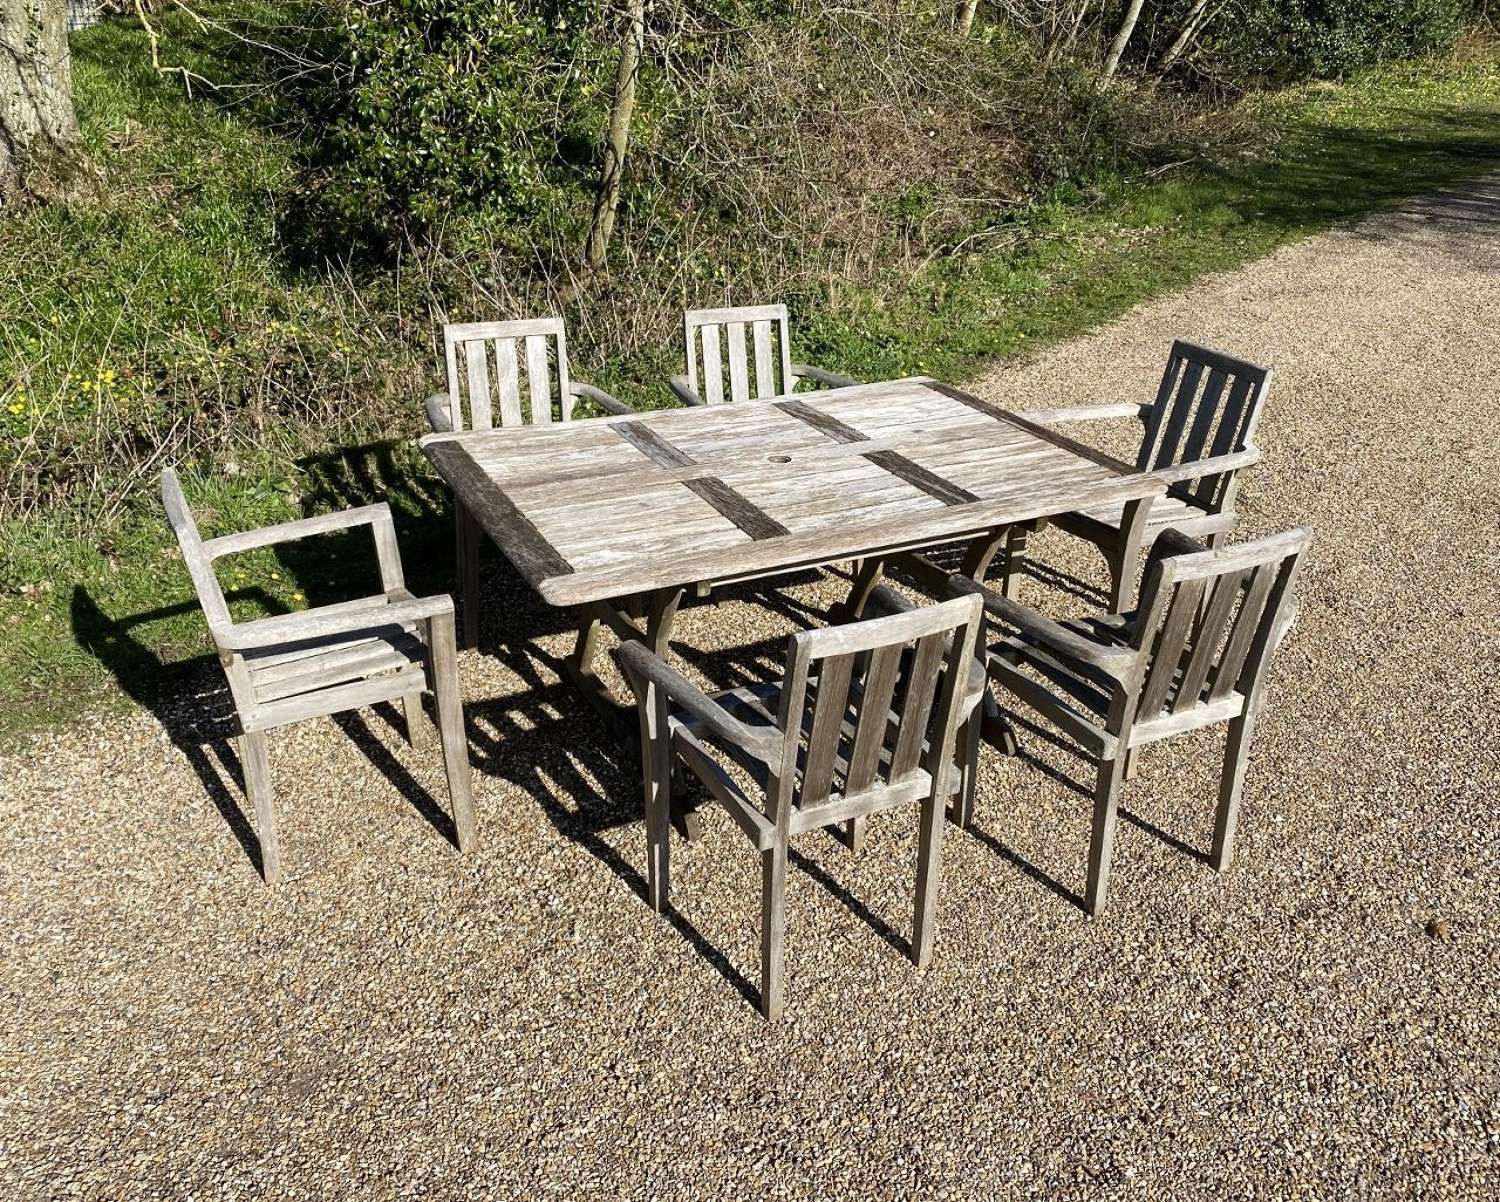 Seating Set with 6 Chairs